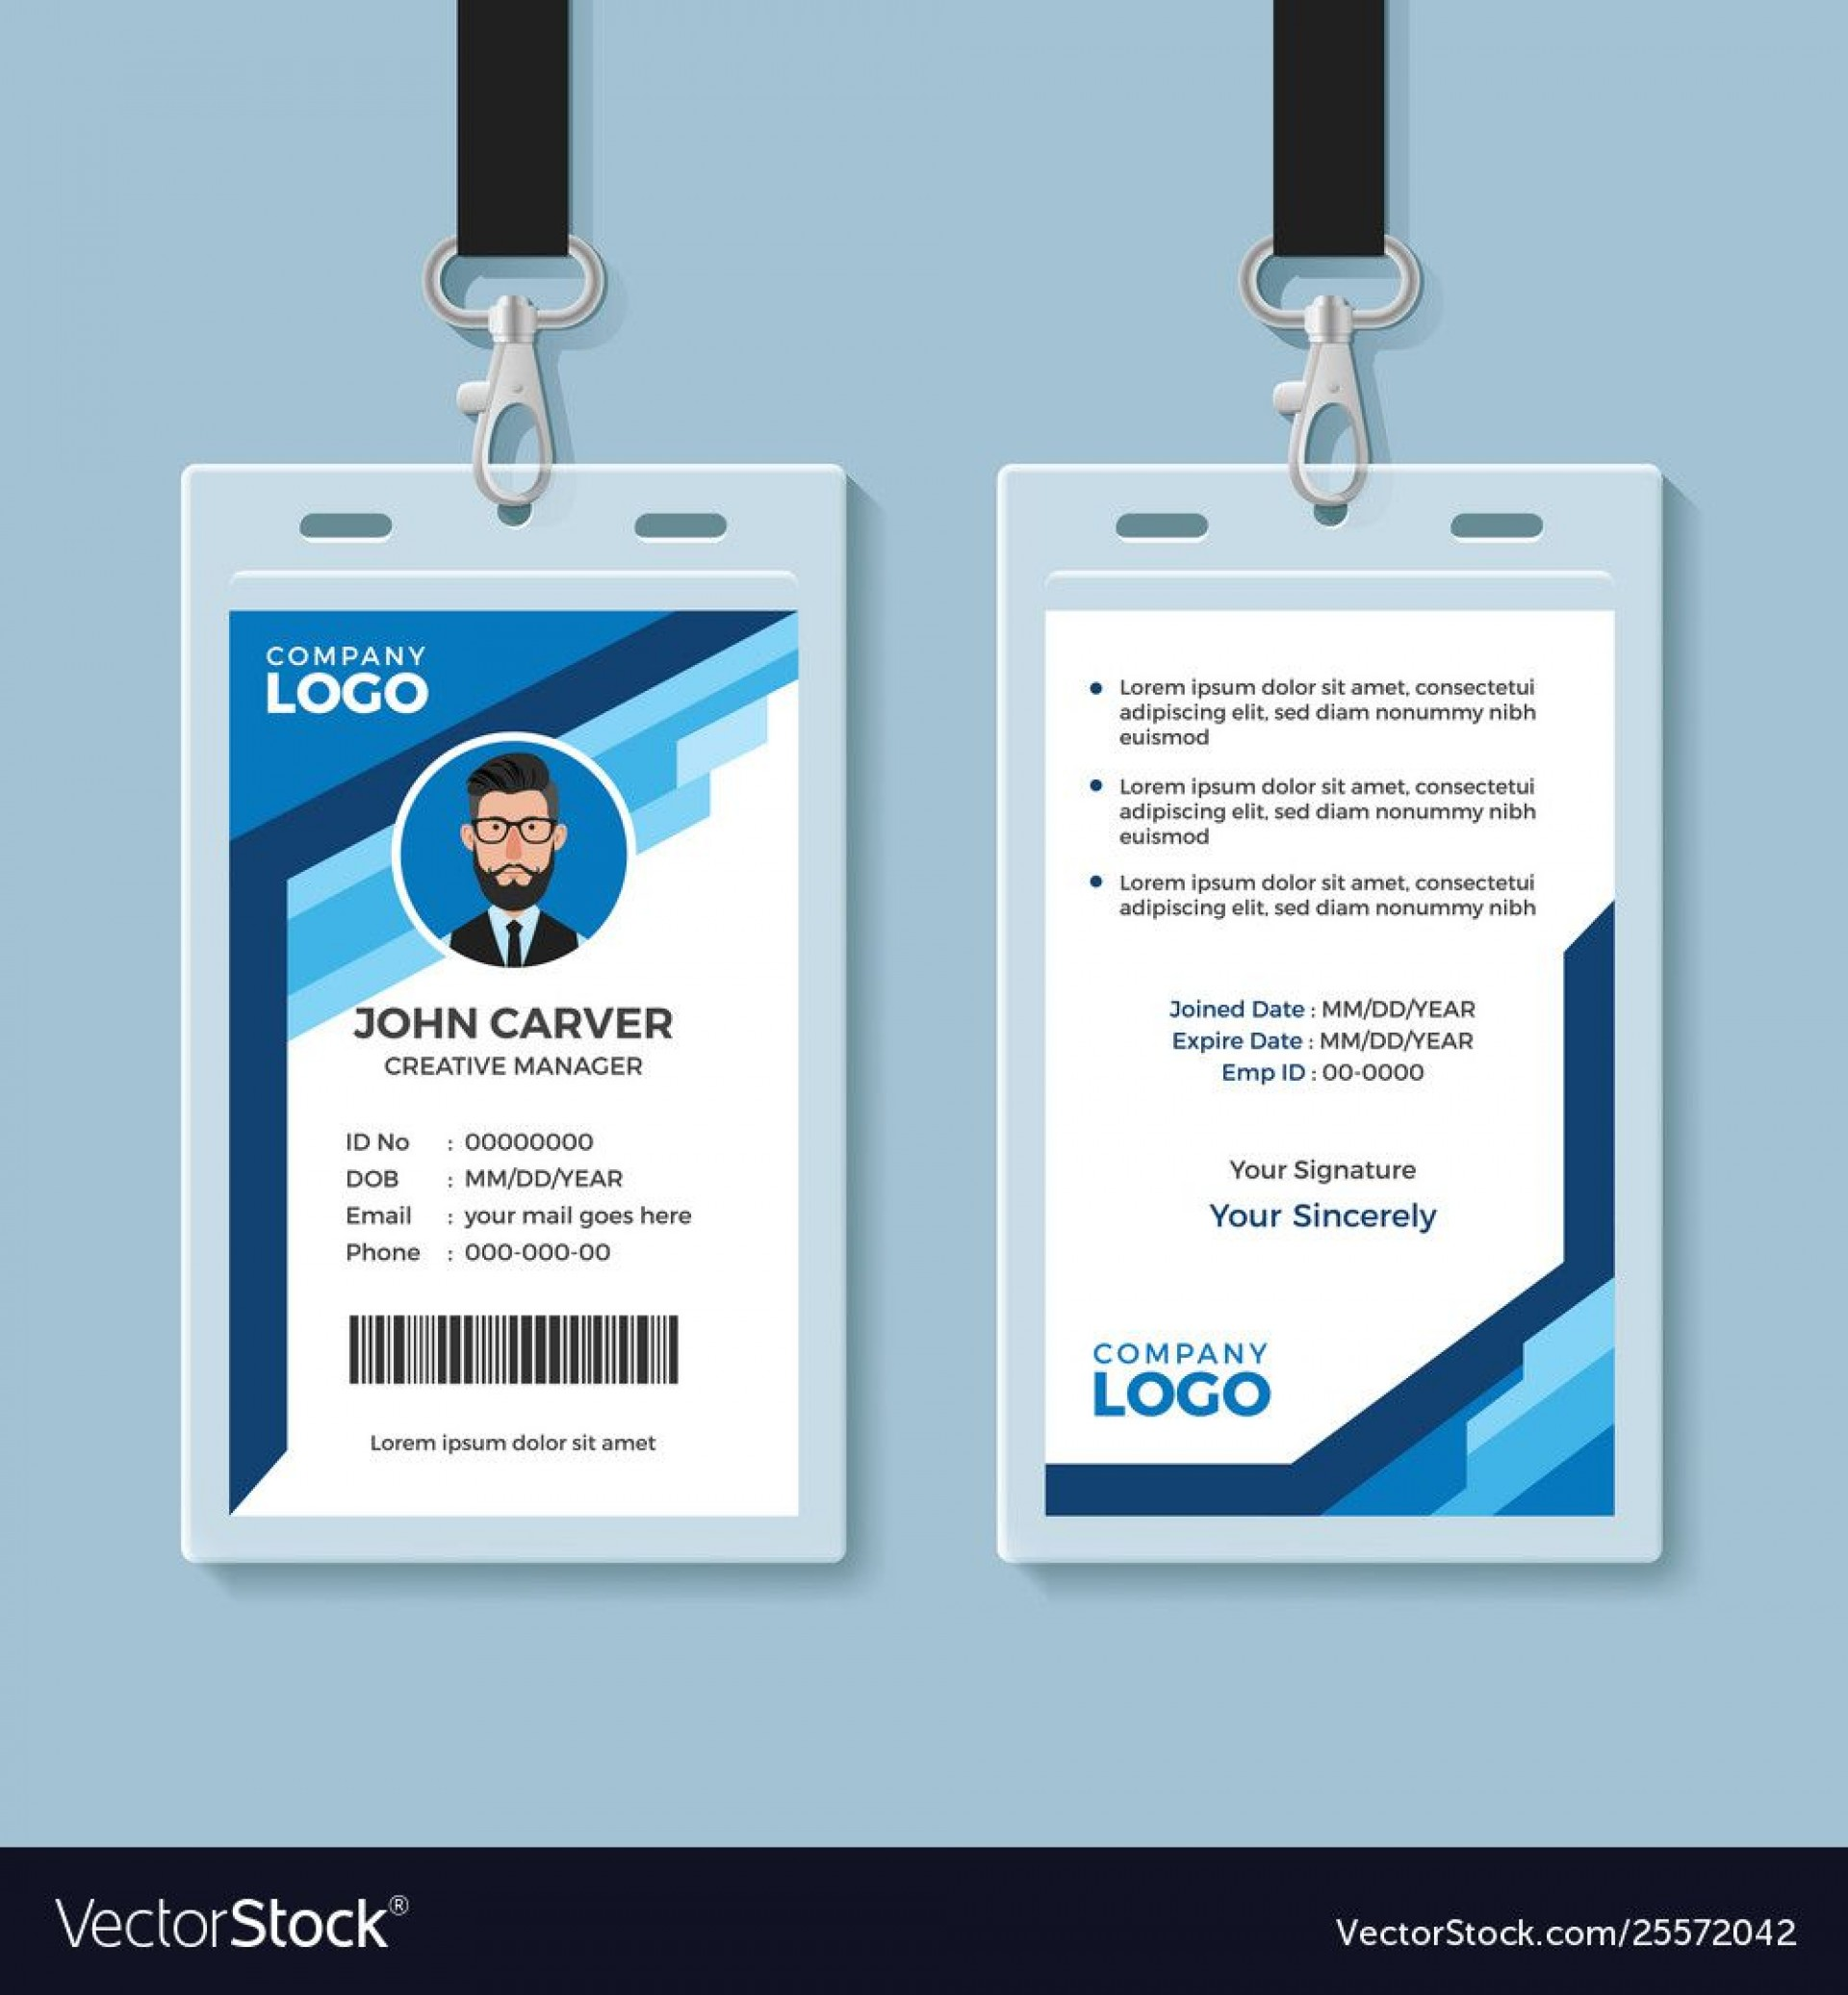 004 Magnificent Id Card Template Free Image  Download Pdf Design1920